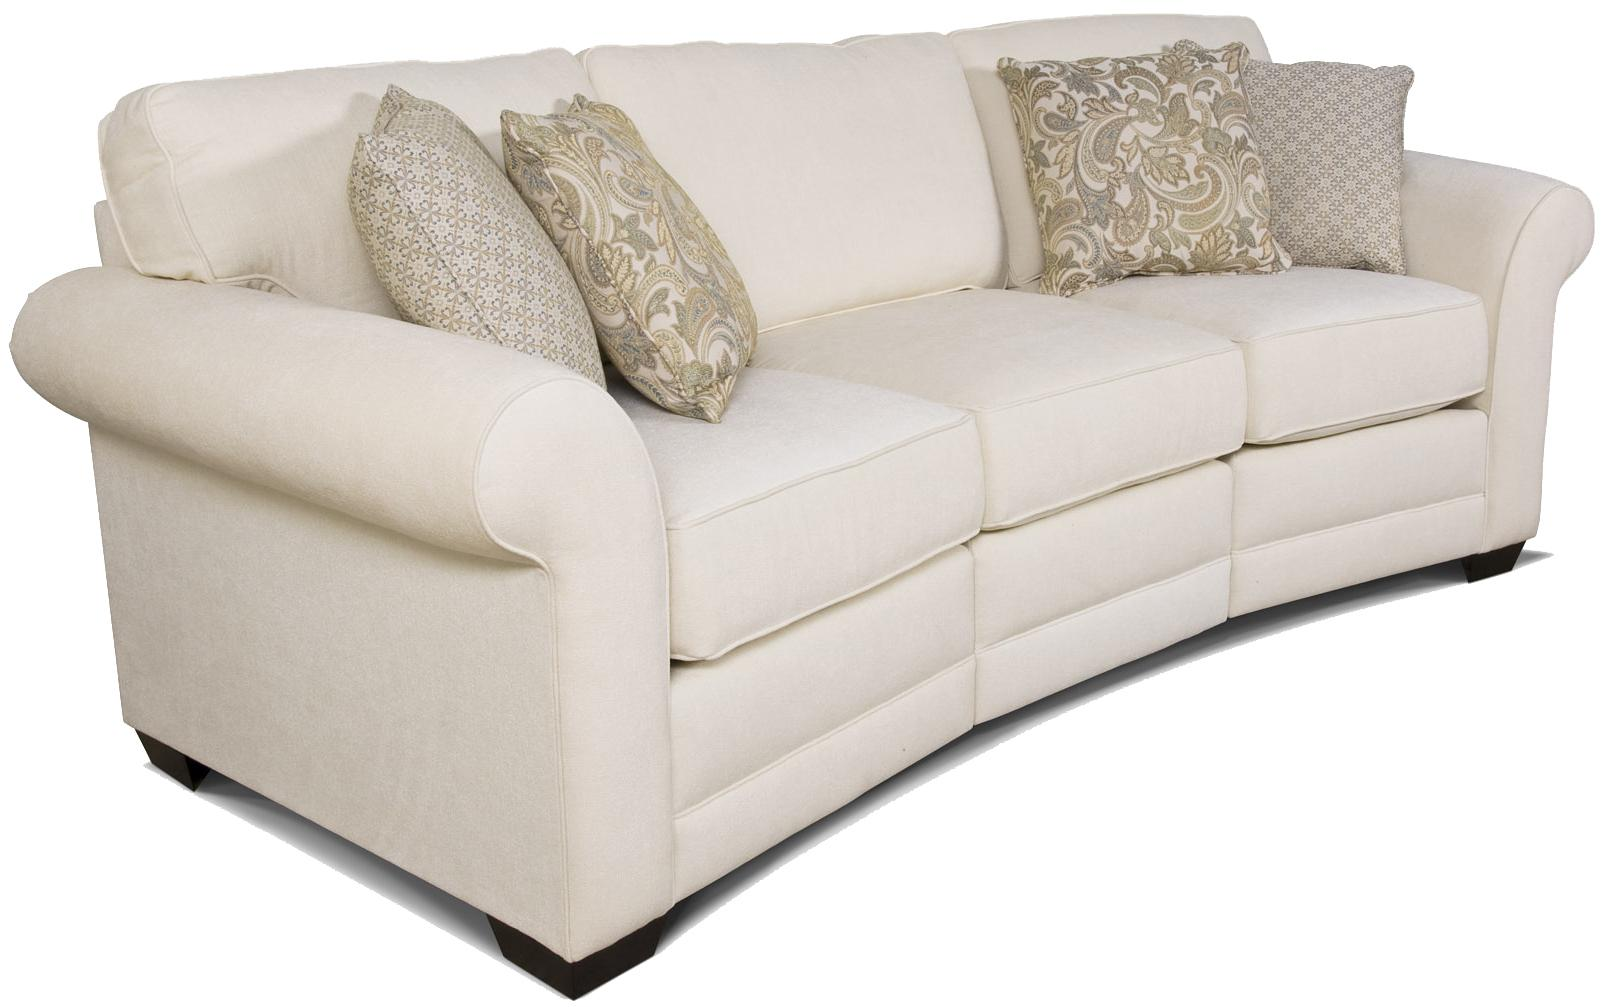 conversational sofa cover kingston leather england brantley 3 piece conversation dunk and bright